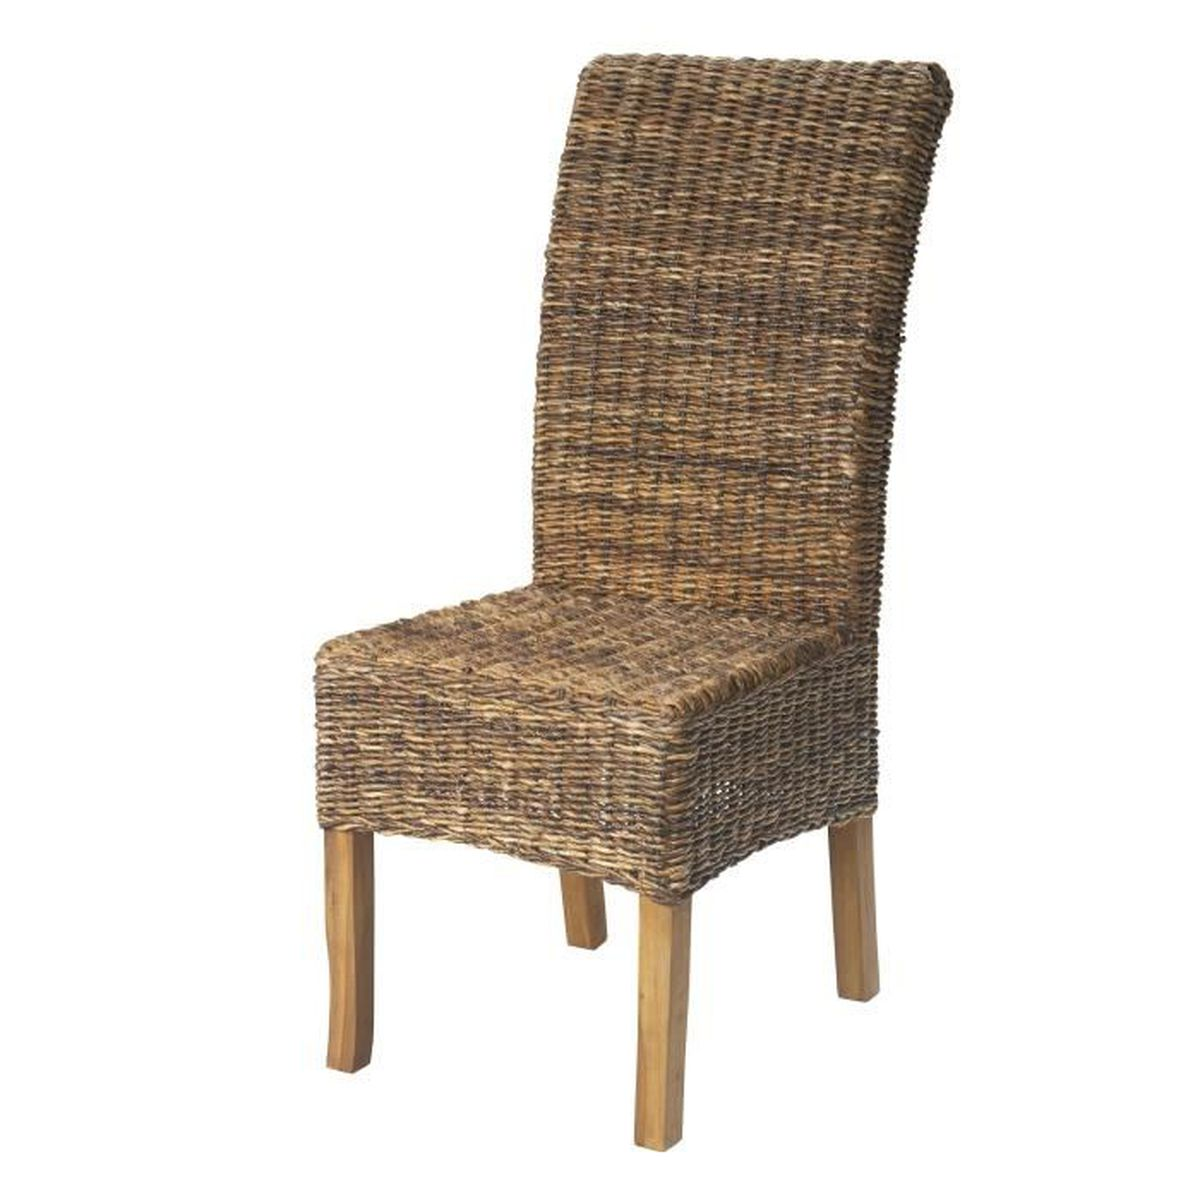 samourai chaise en abaca naturel naturel achat vente chaise soldes cdiscount. Black Bedroom Furniture Sets. Home Design Ideas